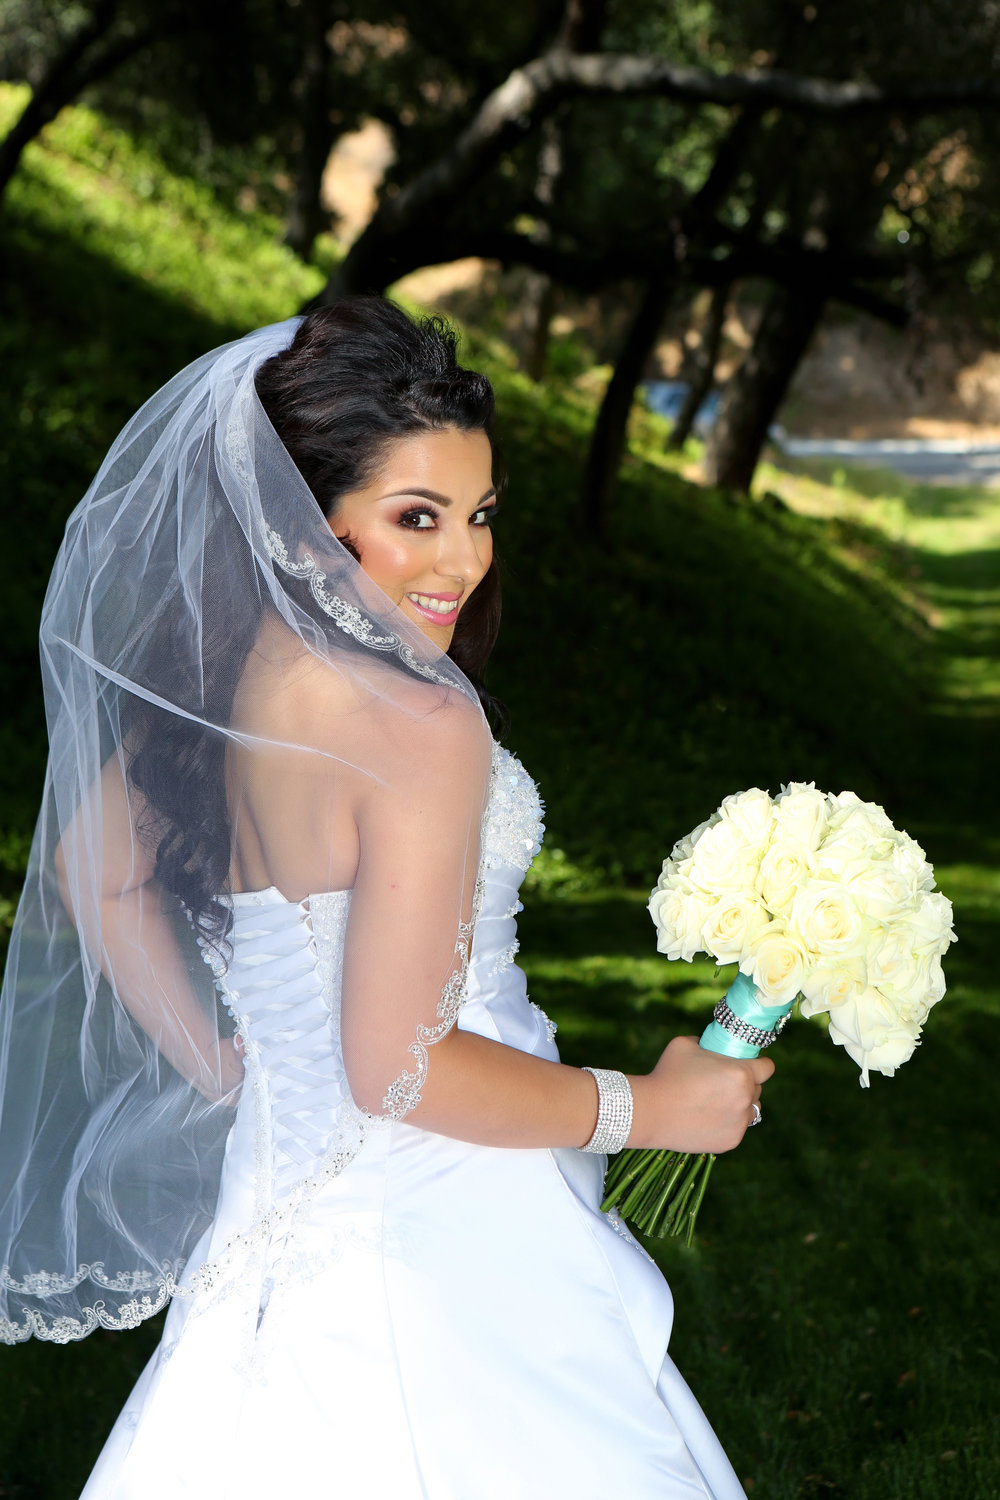 ShadowcatcherGalleryOne_SanDiegoWeddingPhotogrpaher_037.JPG